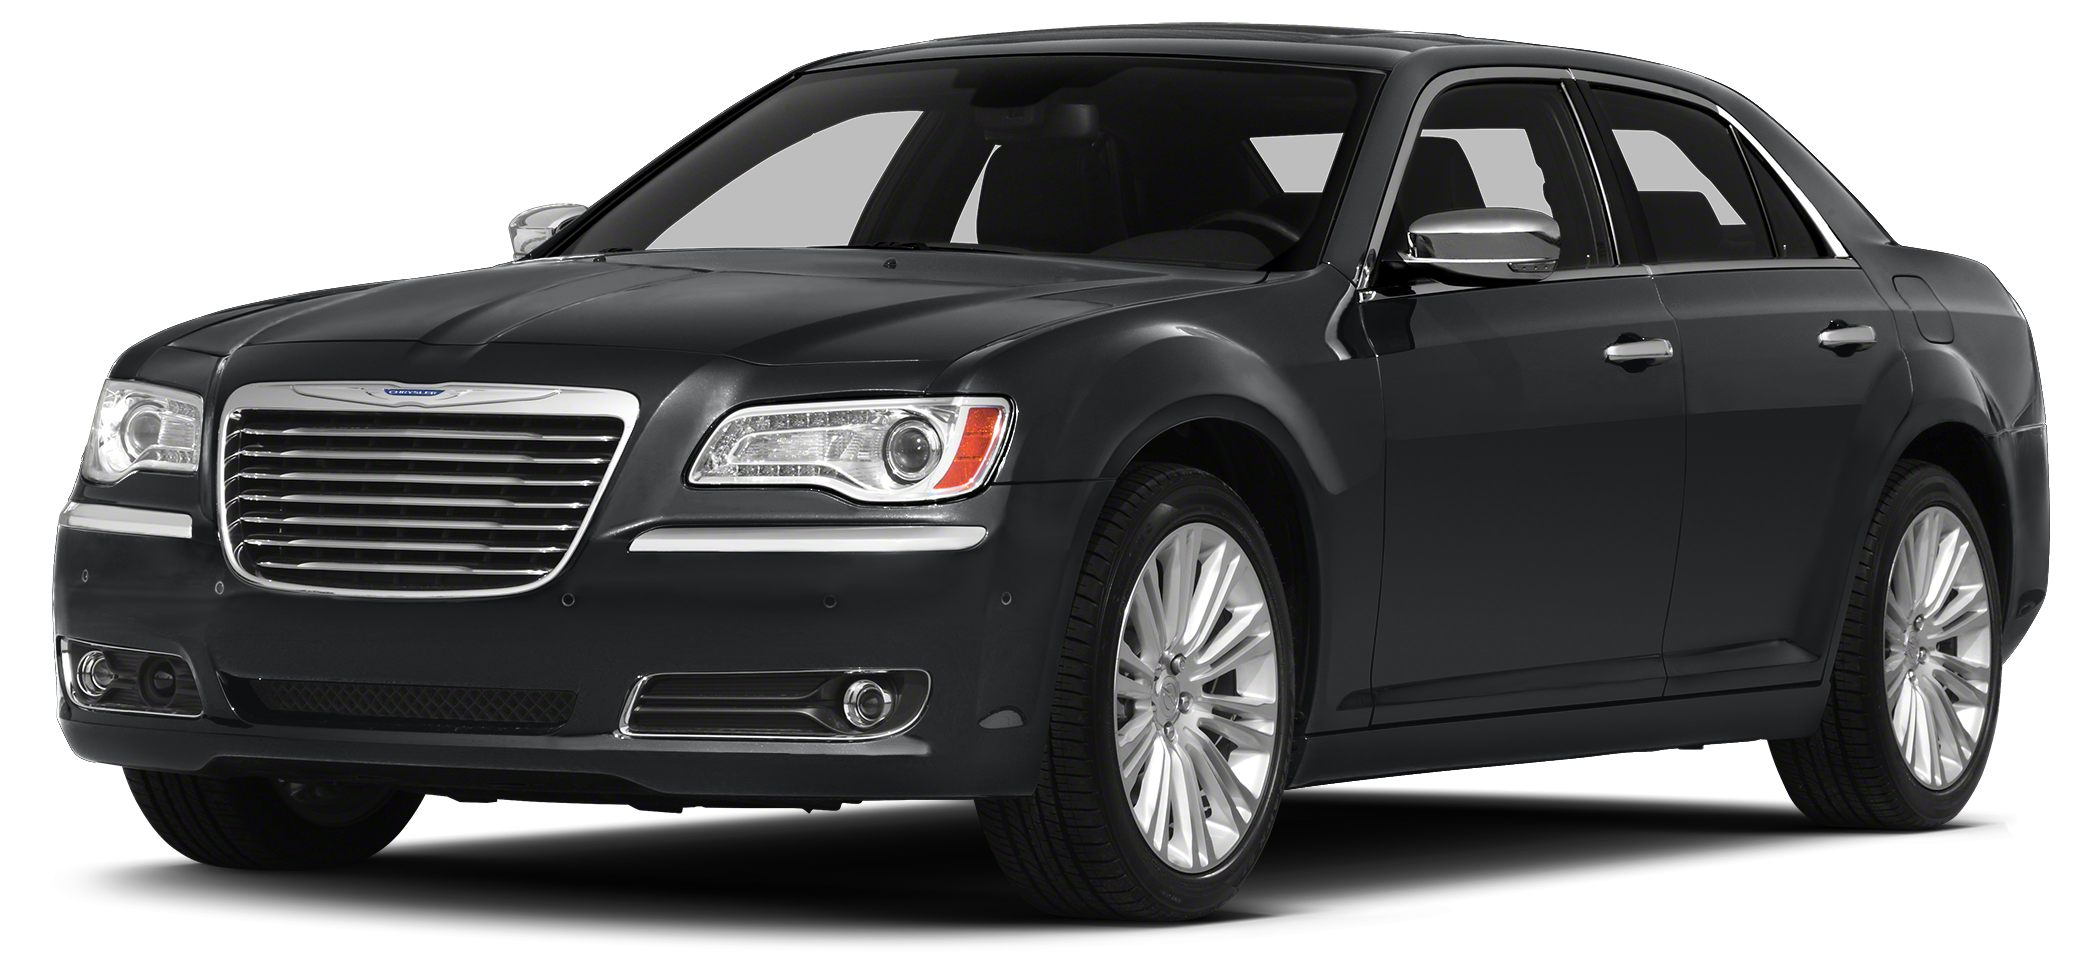 2014 Chrysler 300 Base  COME SEE THE DIFFERENCE AT TAJ AUTO MALL WE SELL OUR VEHICLES AT